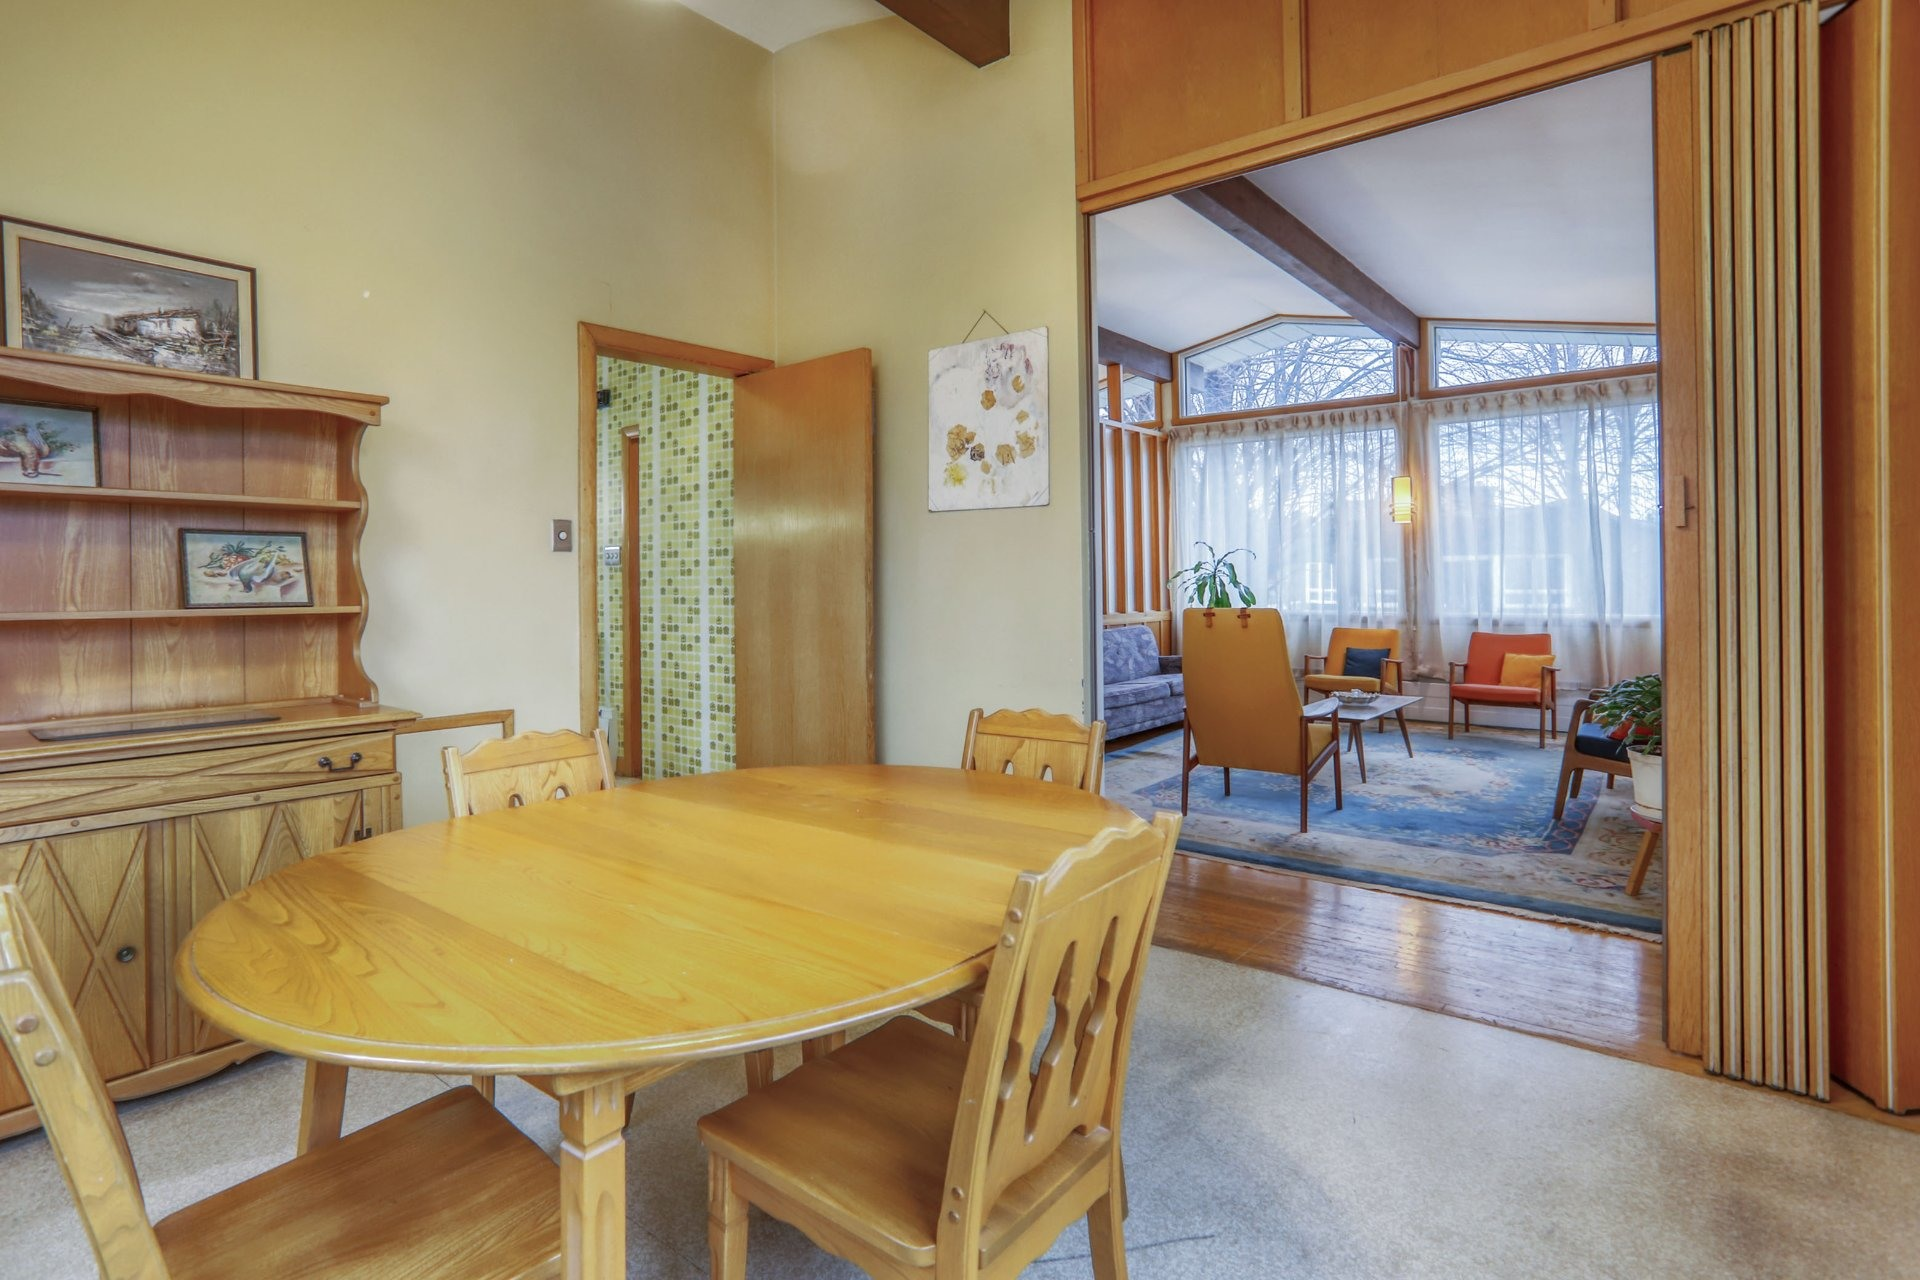 image 7 - House For sale Salaberry-de-Valleyfield - 10 rooms